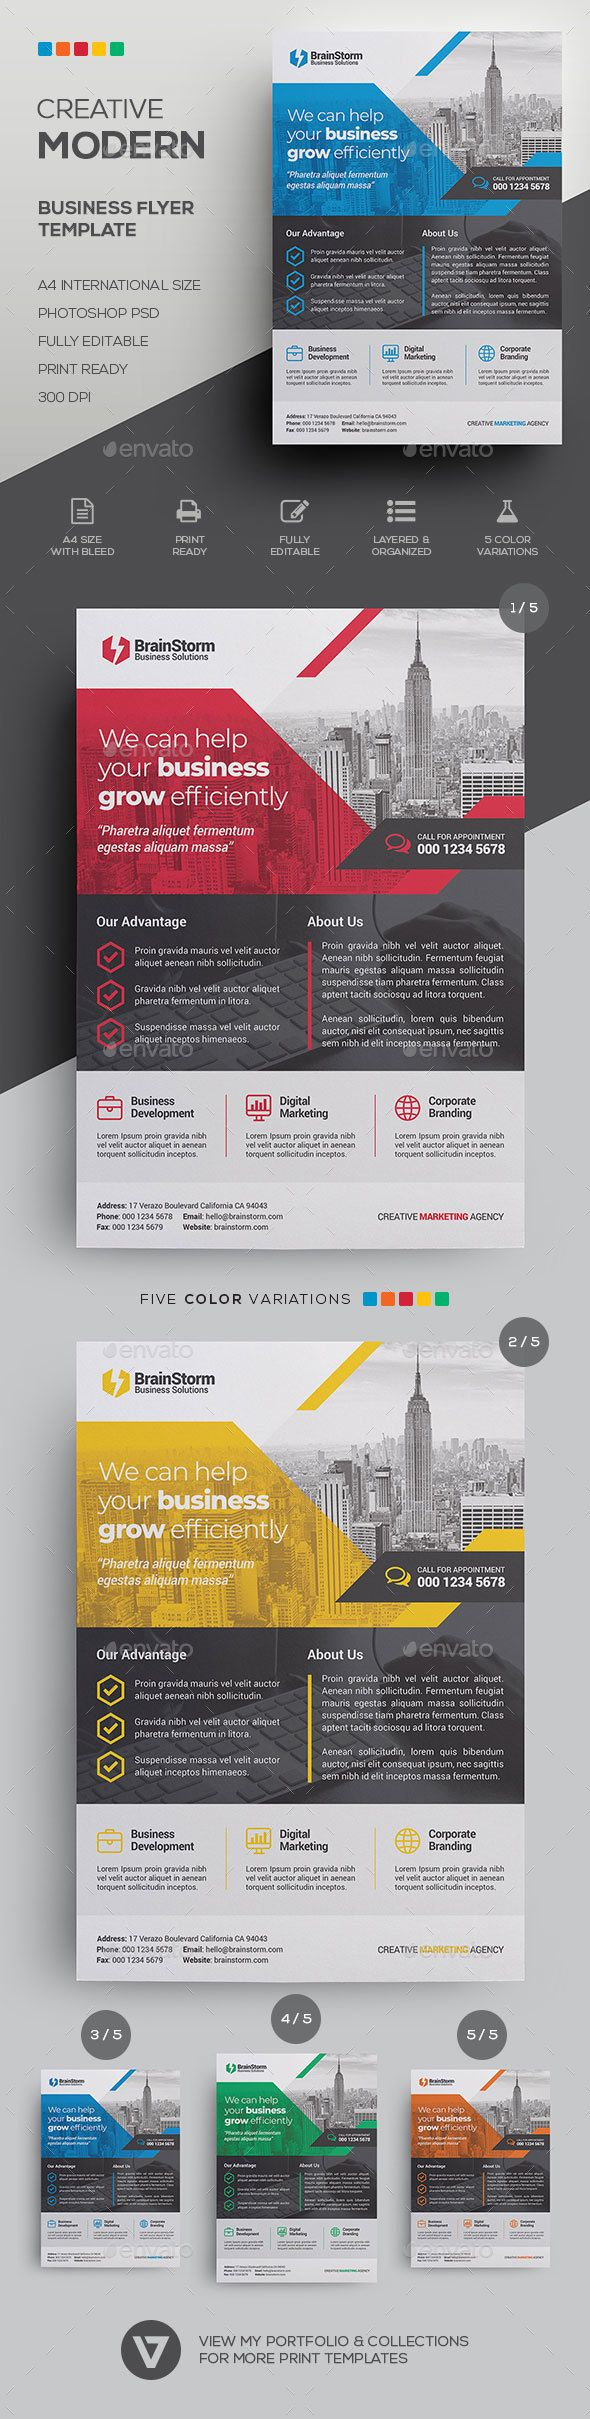 Corporate Business Flyer Template   Business flyer templates ...